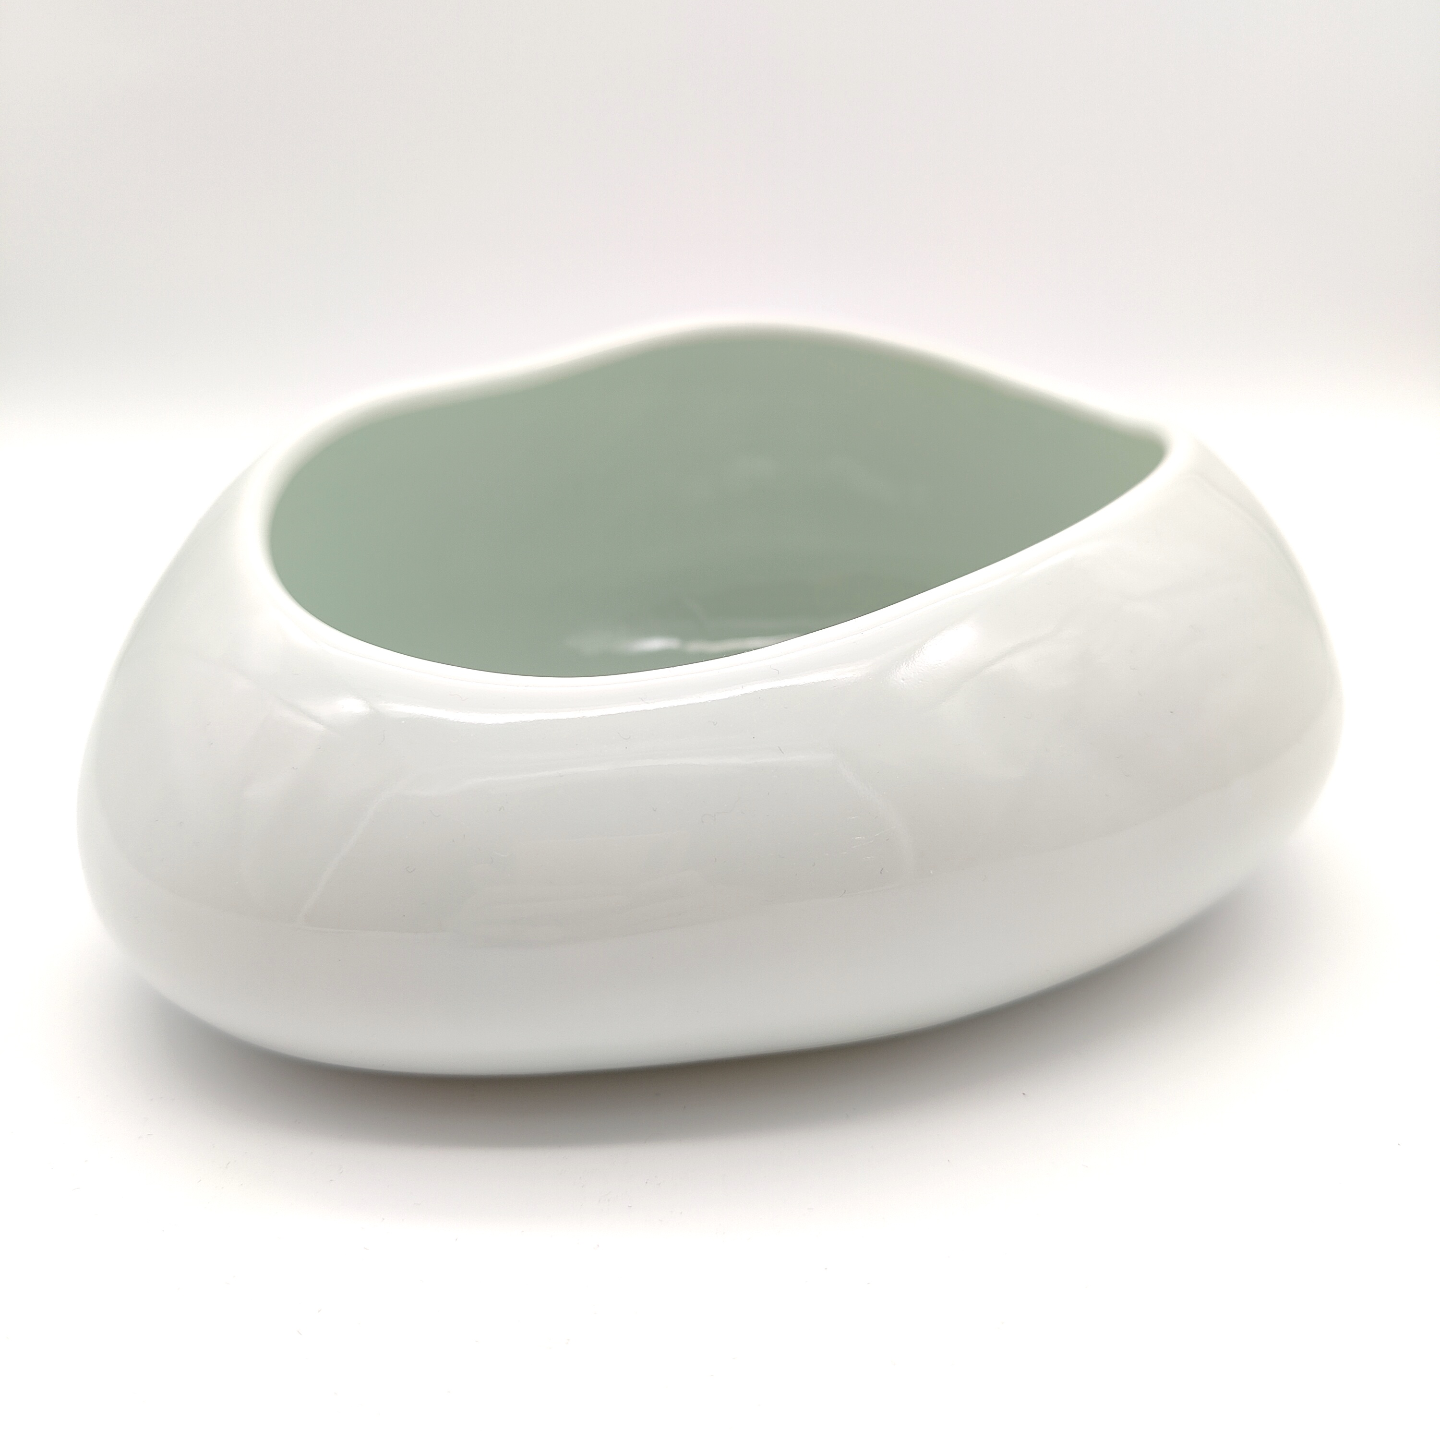 Green White Cobble Stone Bowls-14